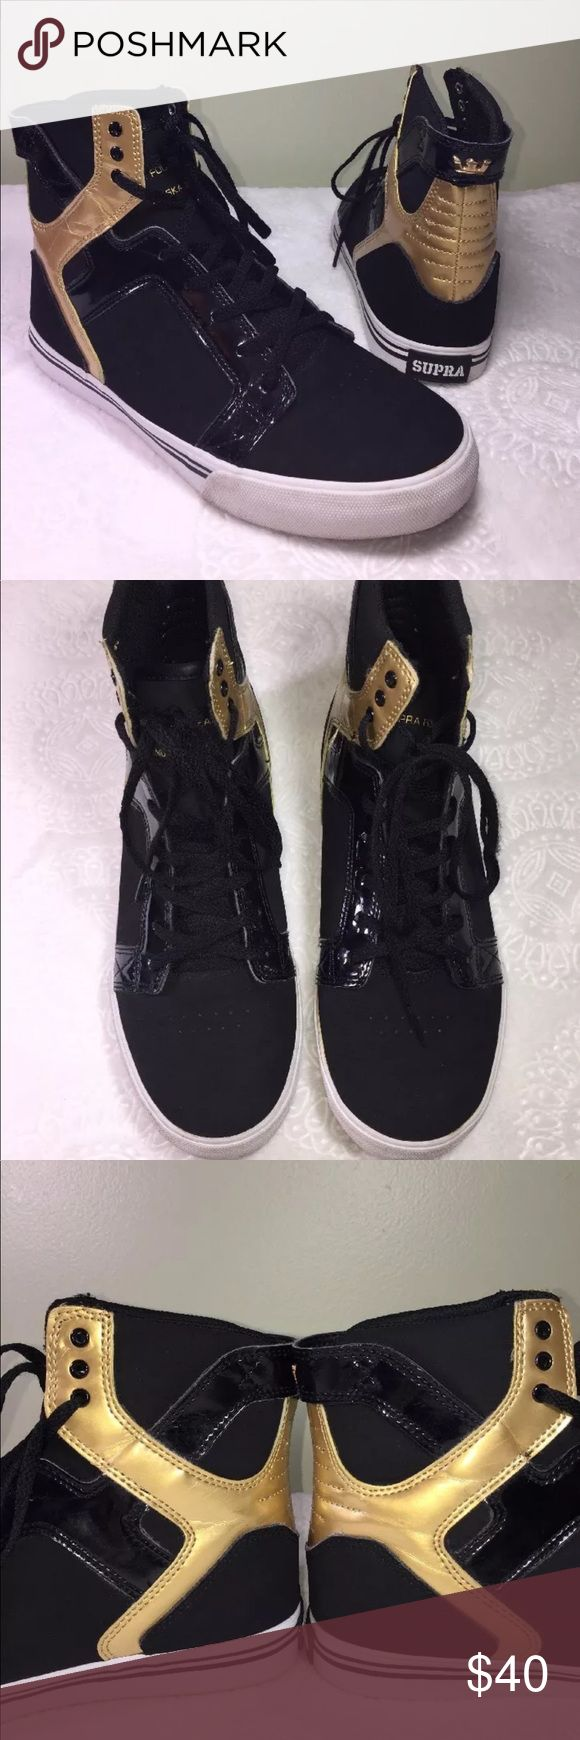 SUPRA Sky Top Muska Leather Skate Shoes Black Gold SUPRA Sky Top Muska Leather Skate Shoes Black And Gold Boys Size 6 some wear will show in pictures SUPRA Shoes Sneakers